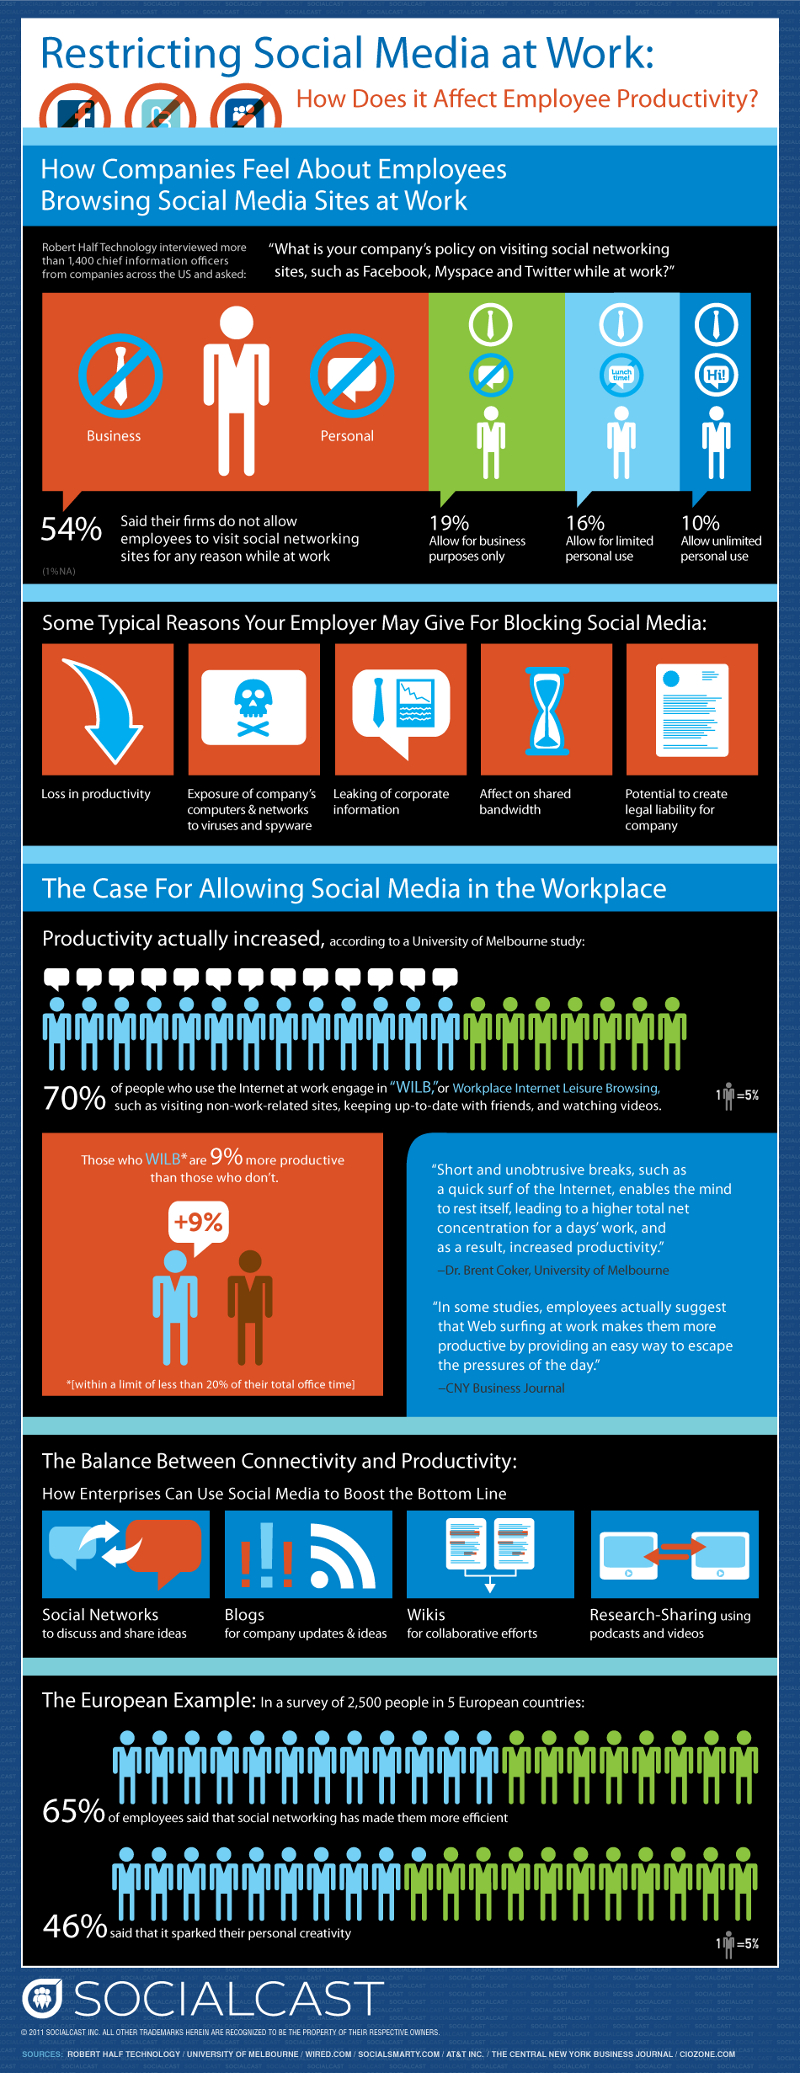 Blocking Social Media at Work1 Blocking Social Media at Work: Statistics and Reasons